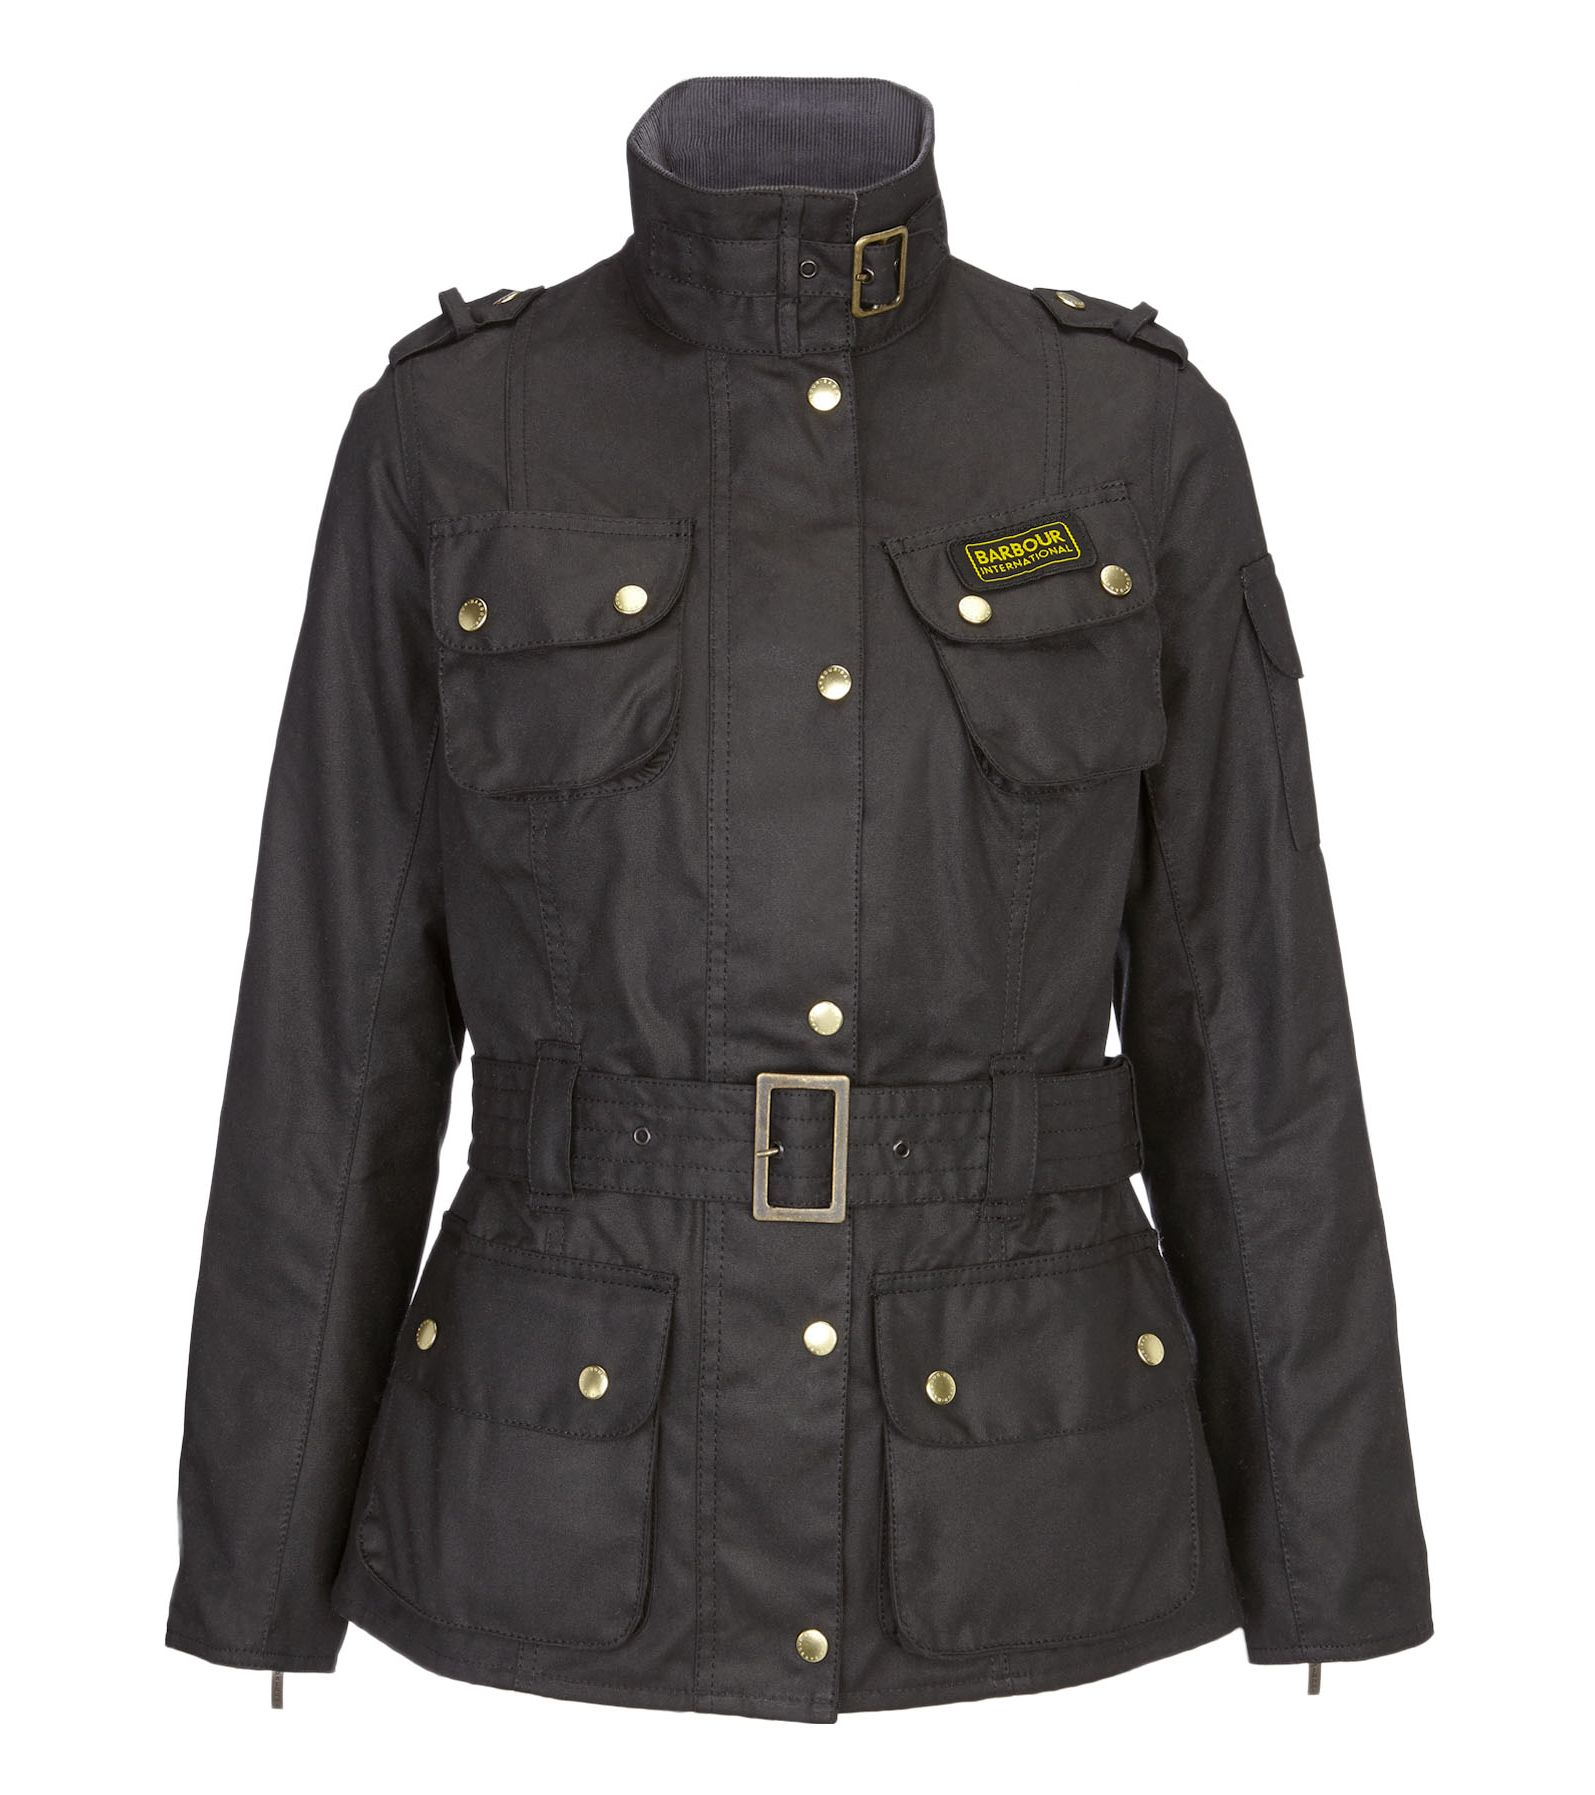 Barbour jacket womens ebay